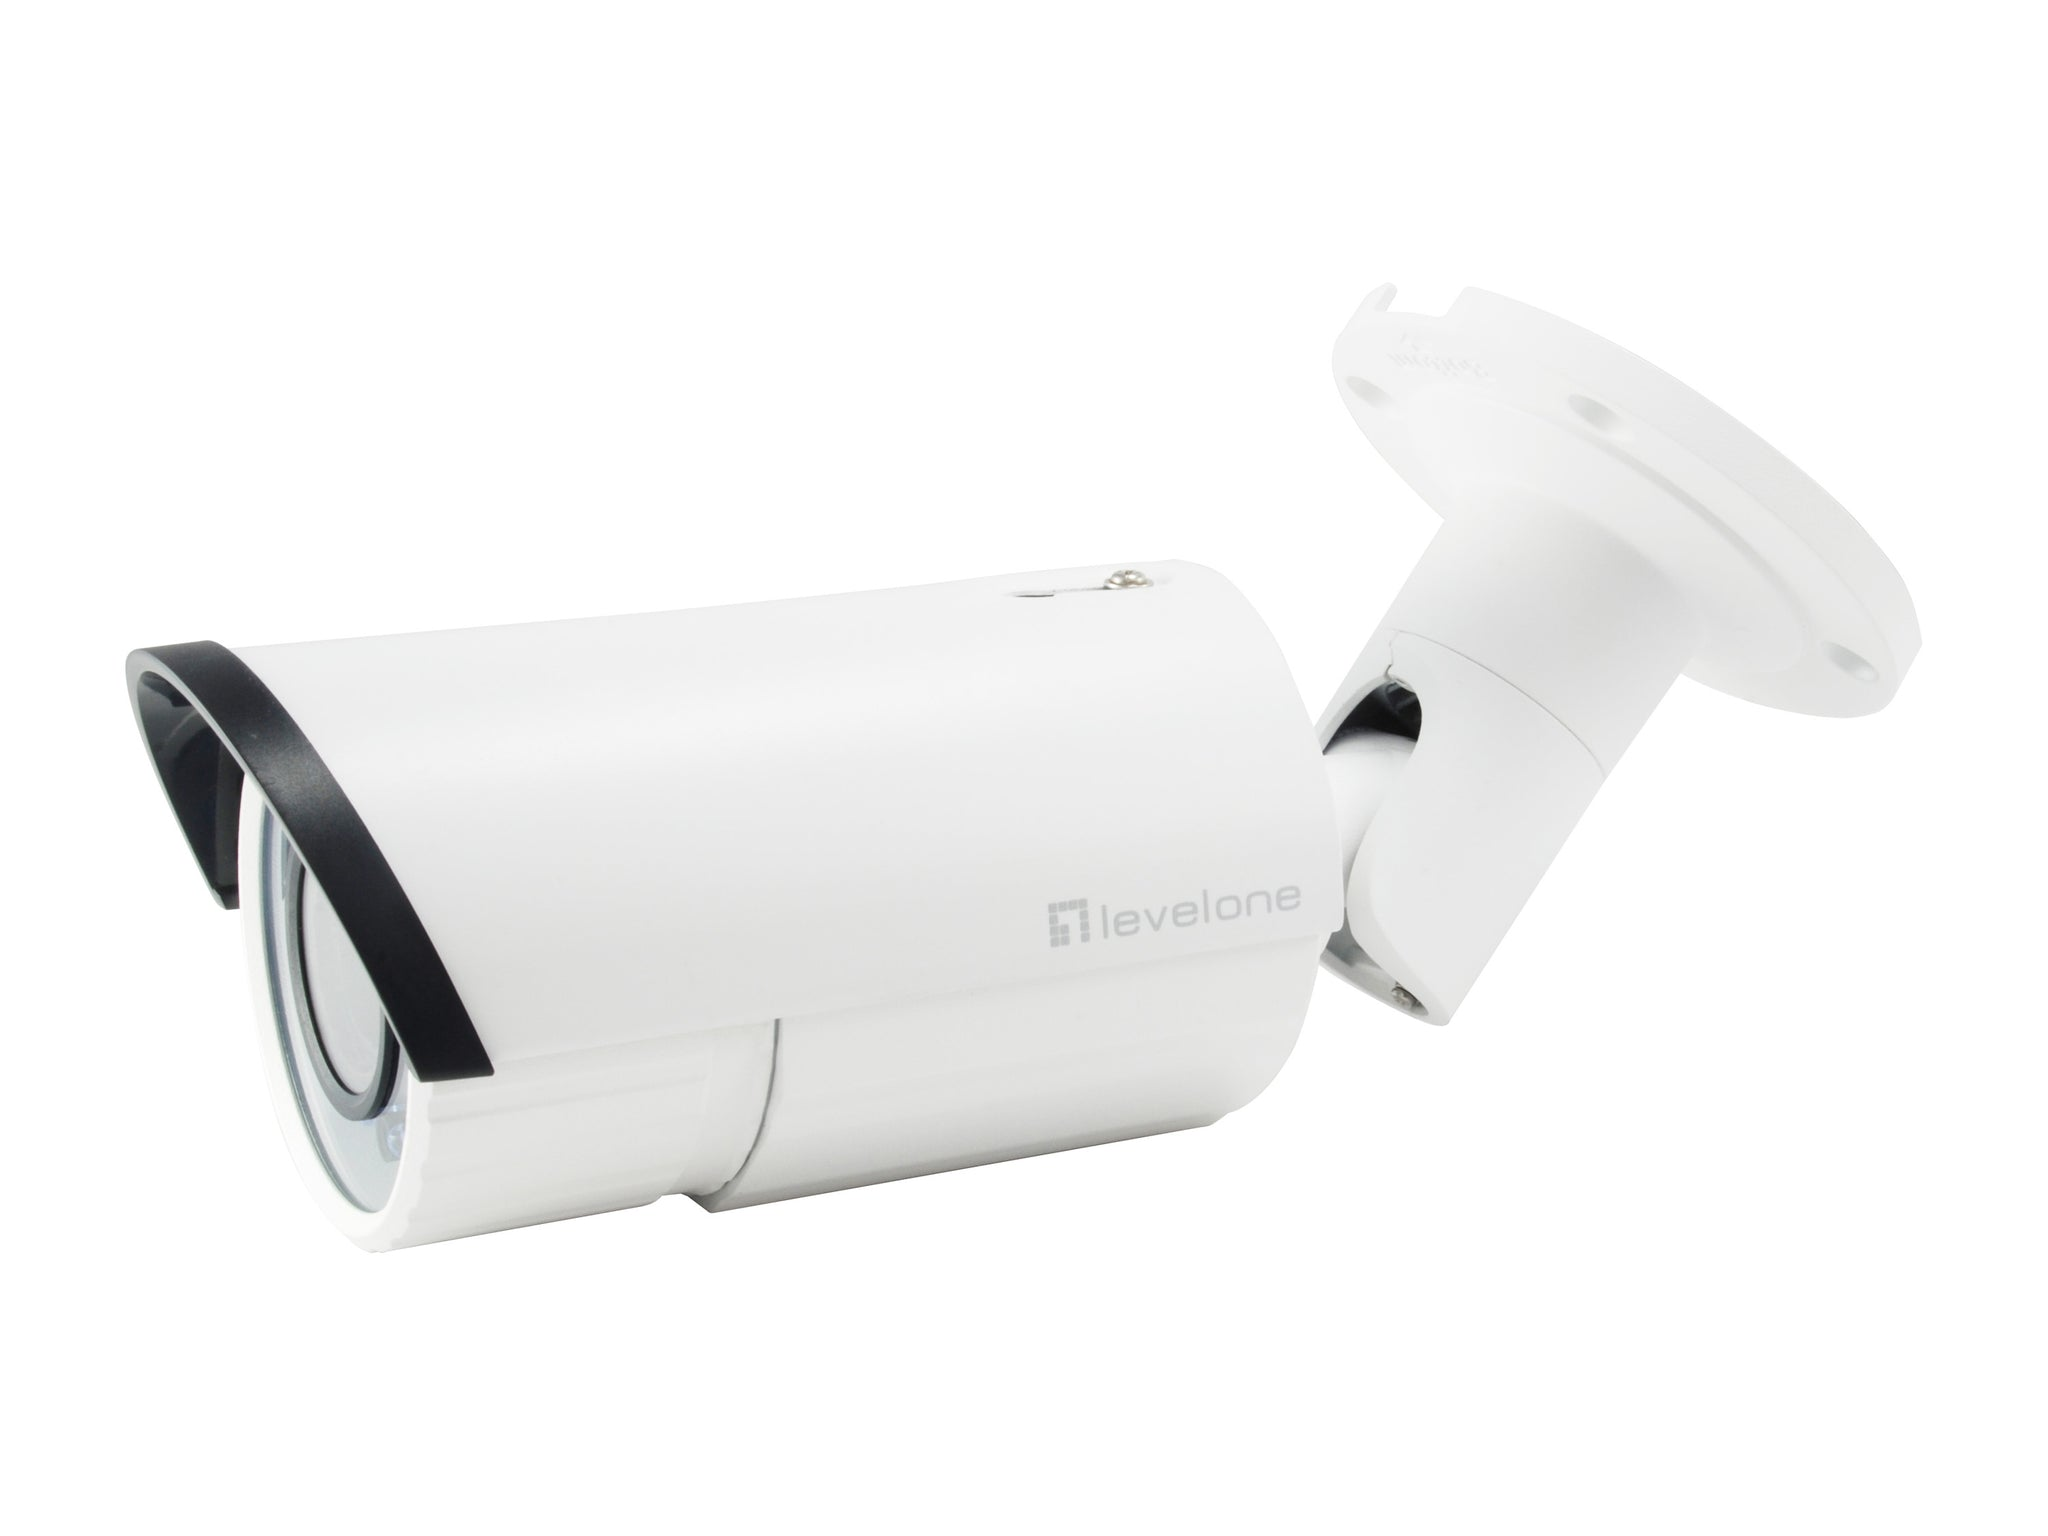 FCS-5060 Fixed IP, 2MP, two-way audio, 4X Optical Zoom, 802.3af PoE, Indoor/Outdoor